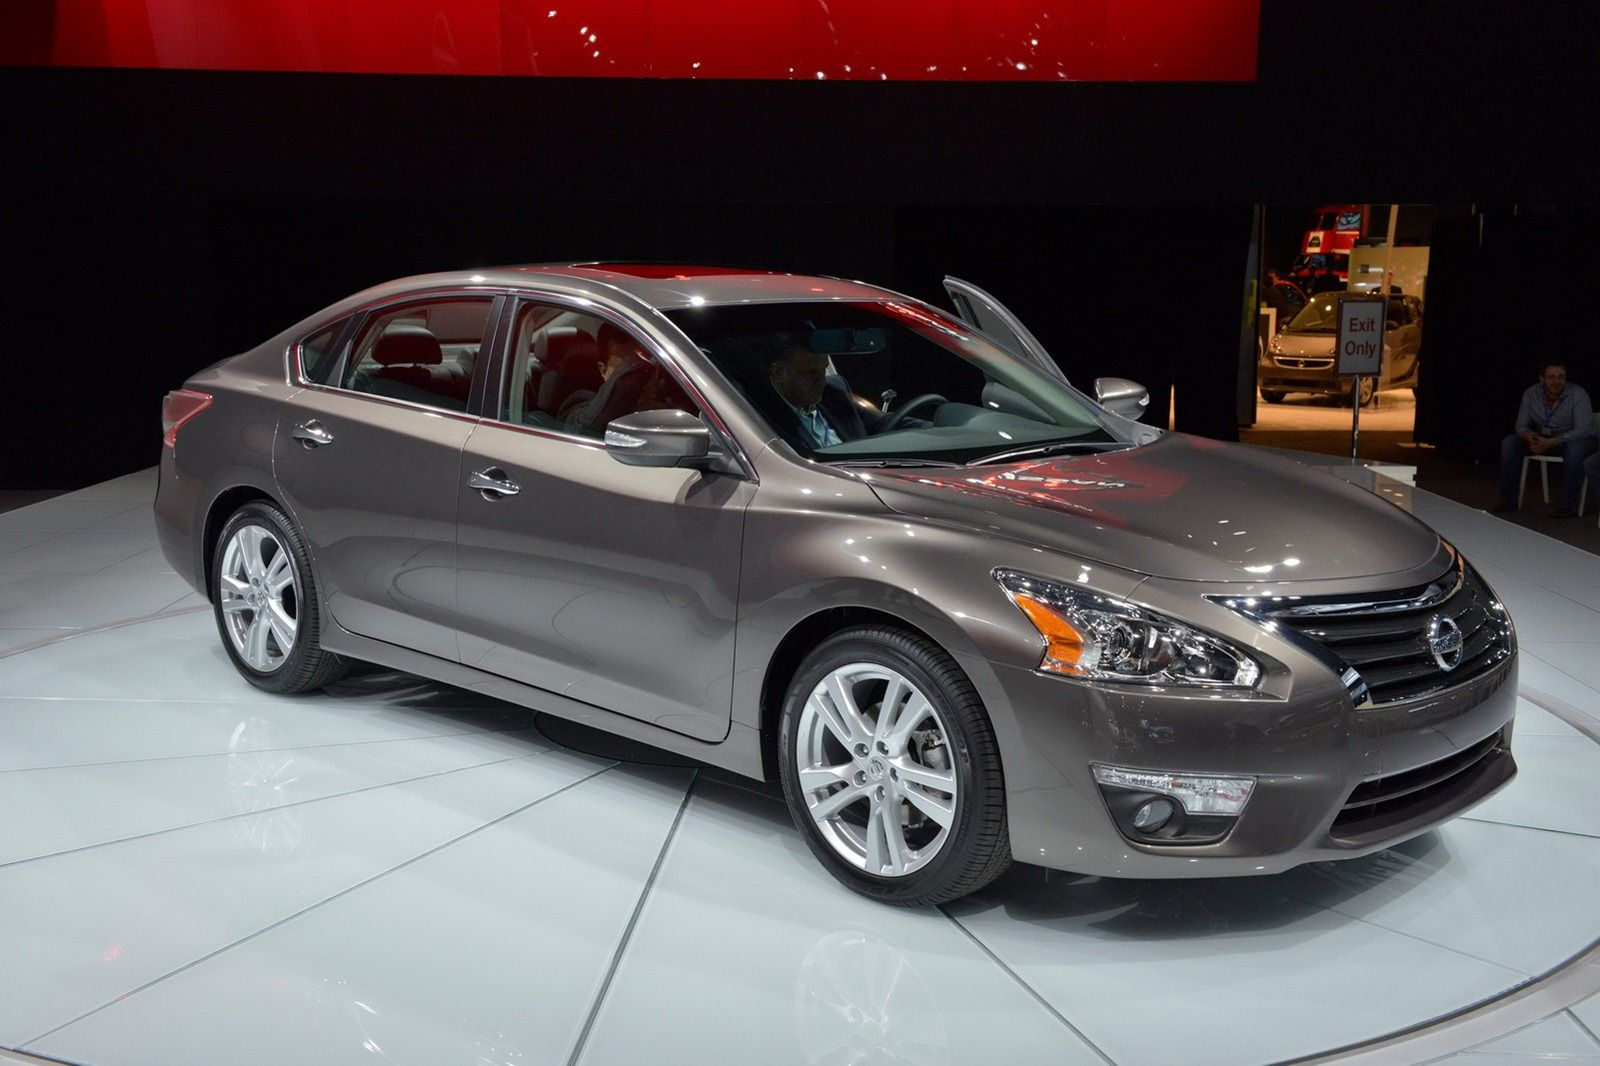 2015 nissan altima prices 2015 Nissan Altima Overview